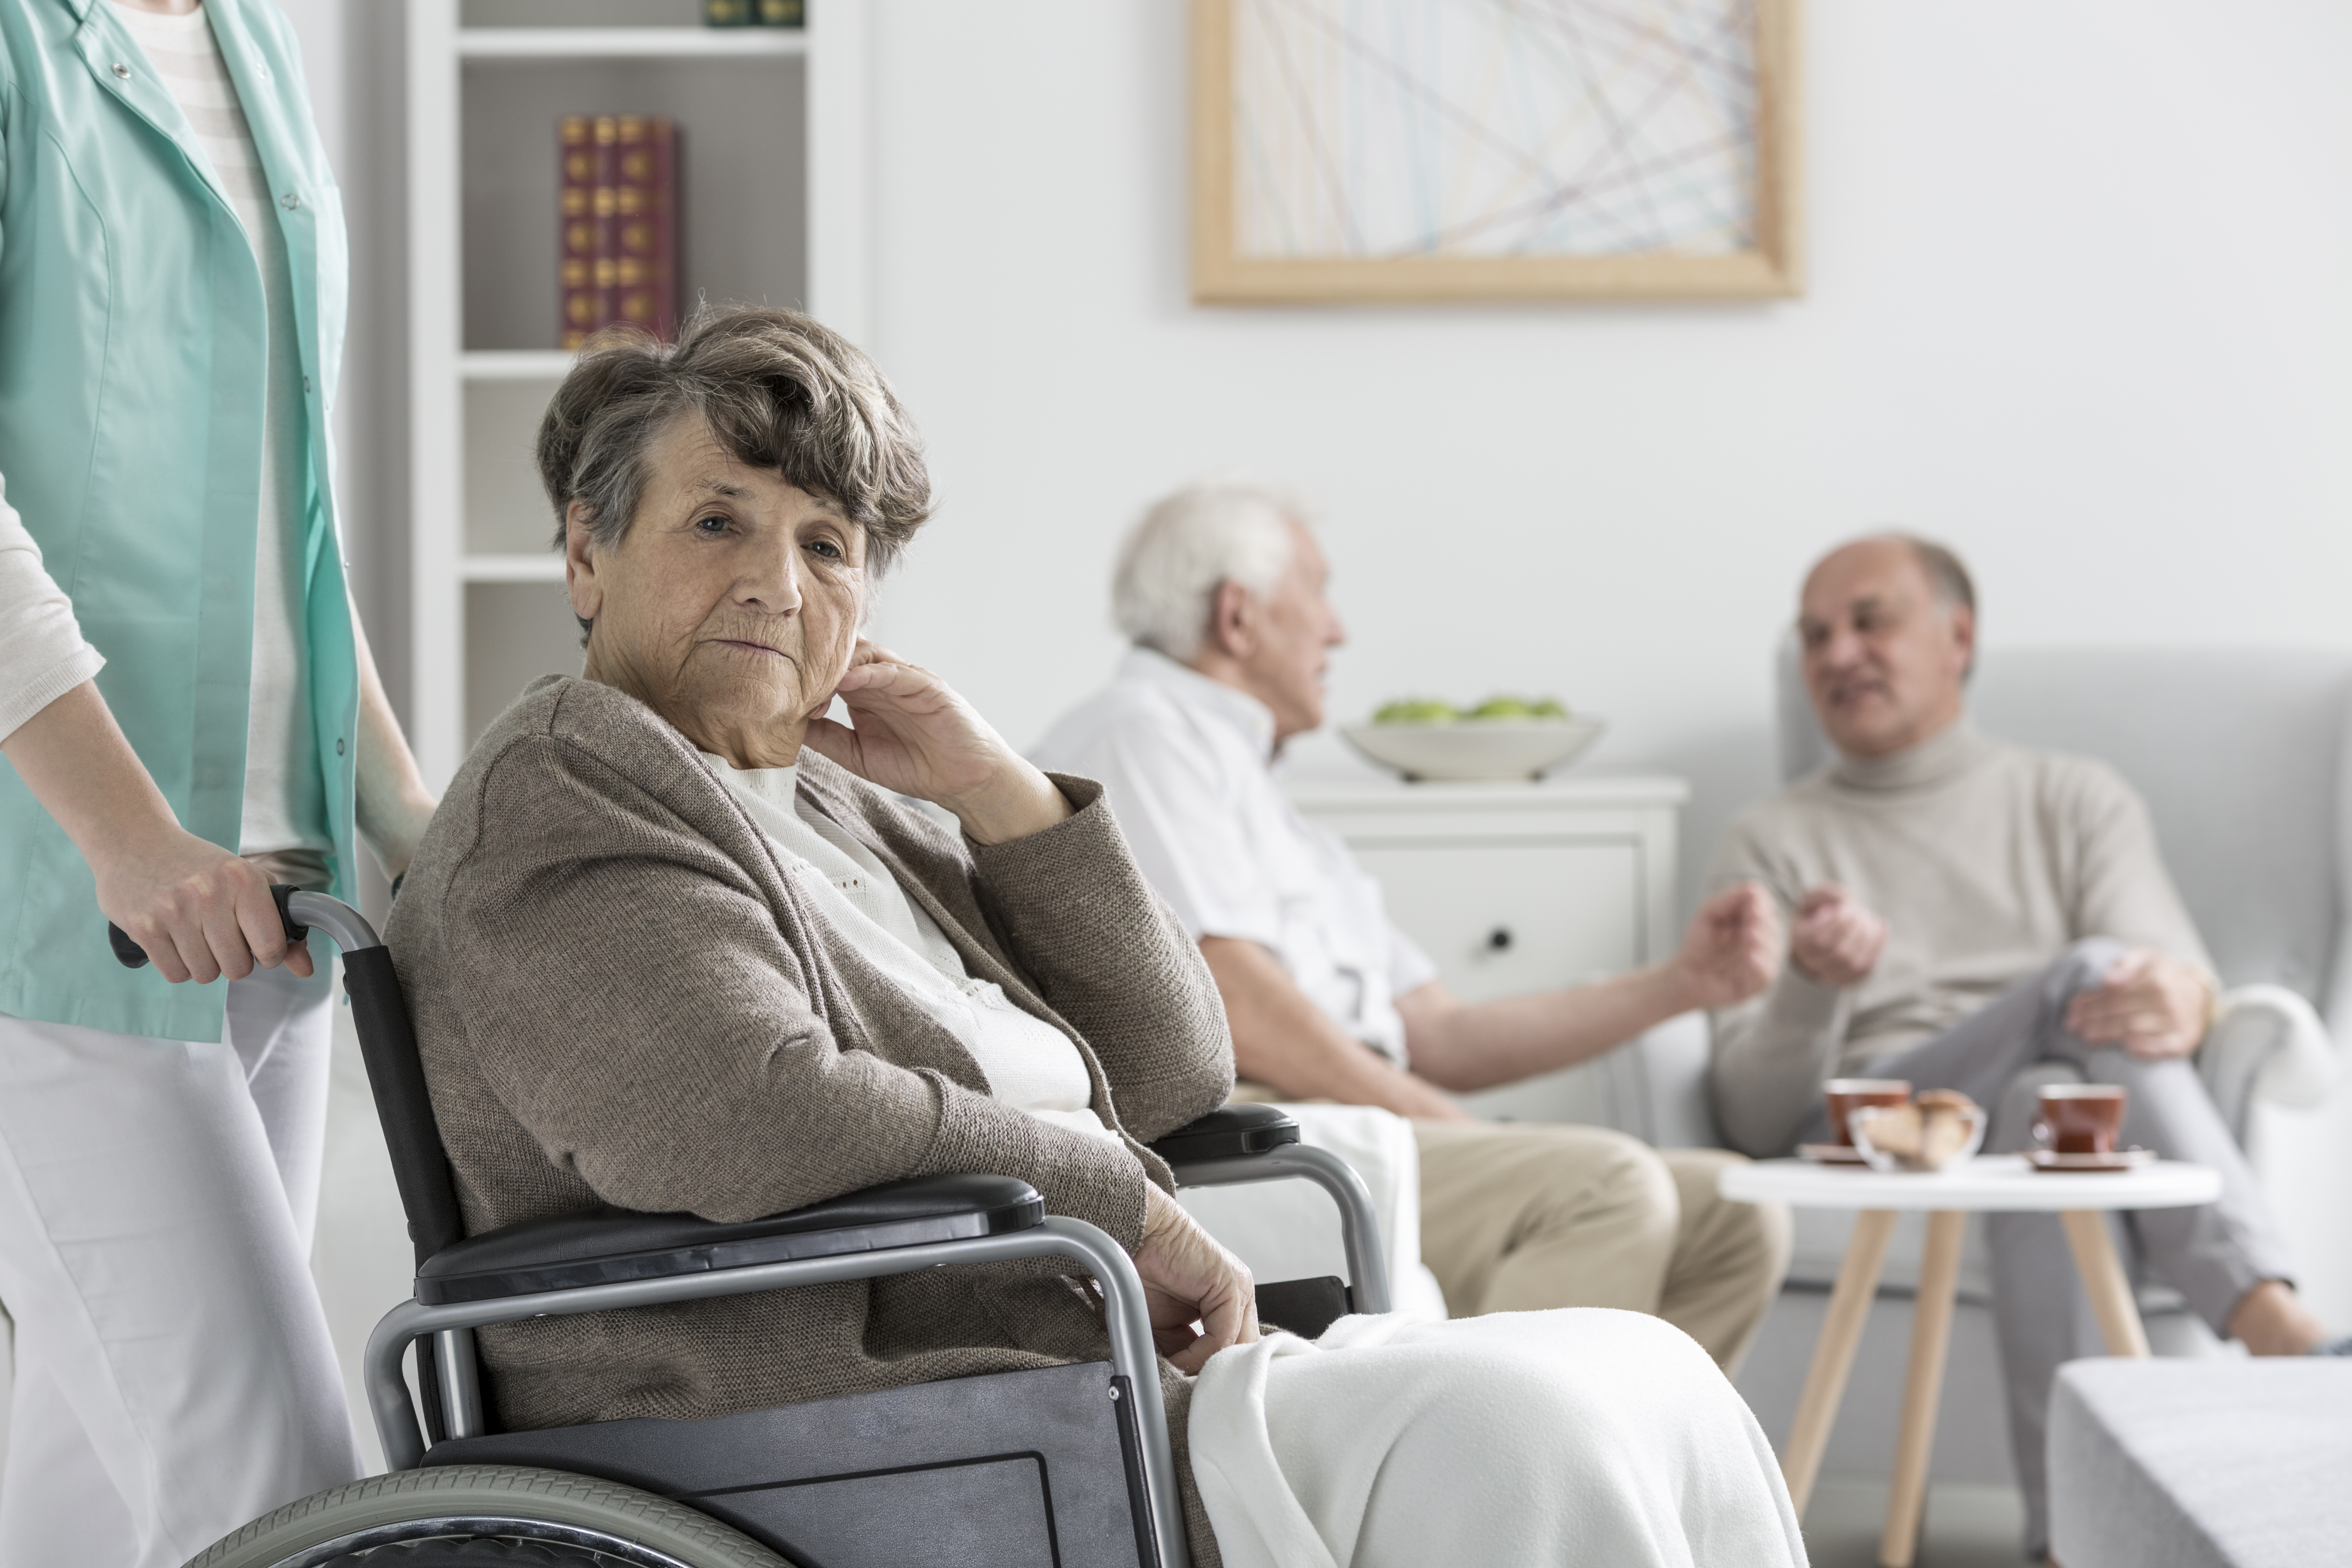 medicaid-cuts-could-drive-retirees-out-of-nursing-homes